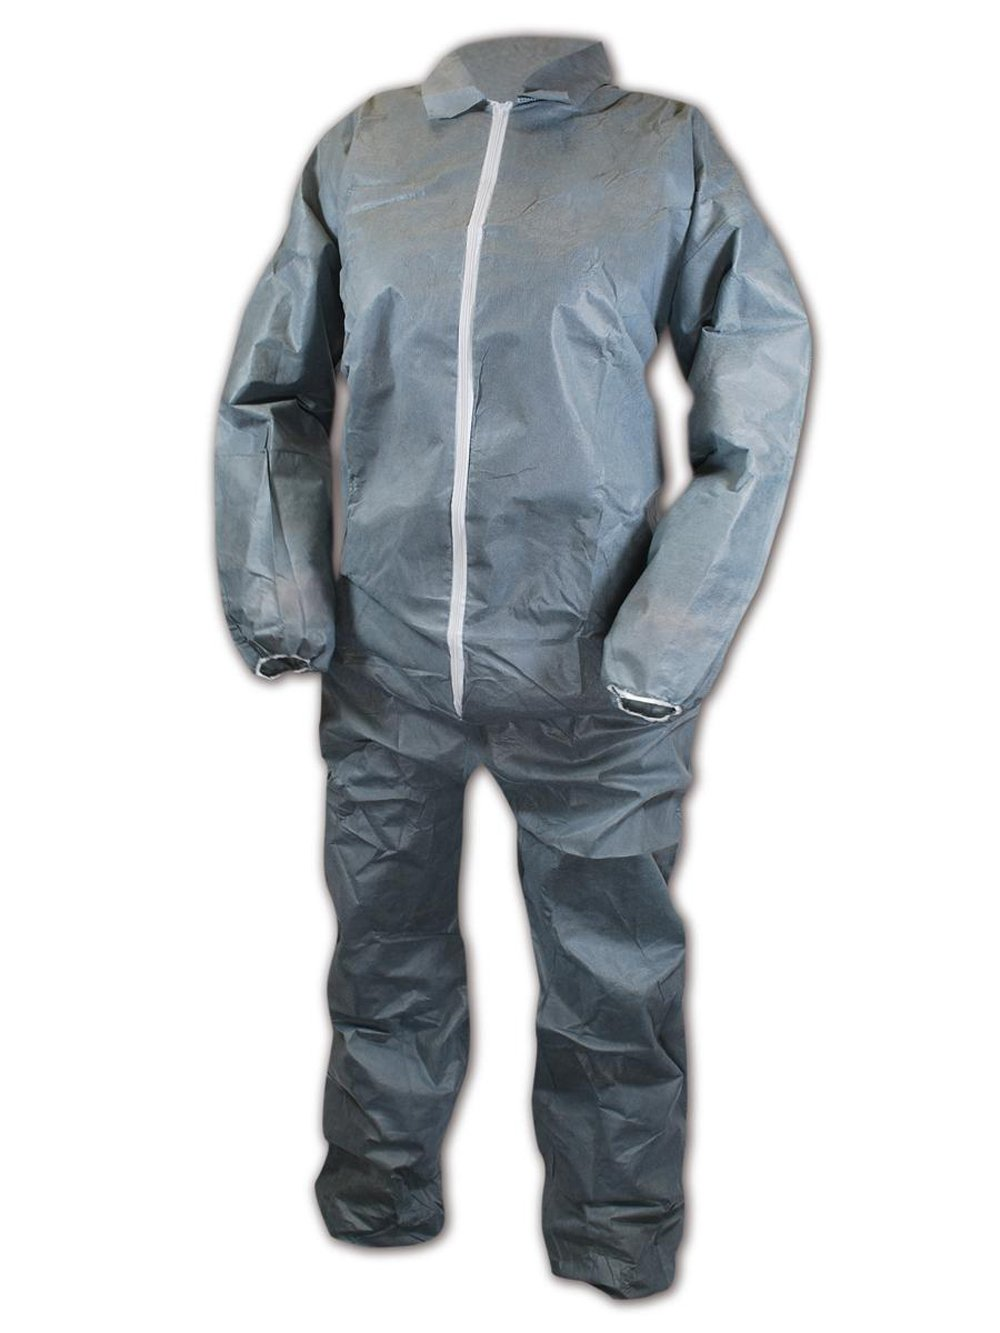 Magid EconoWear Lite N Kool Plus SMS Fabric Coverall, Disposable, Elastic Cuff, Gray, 3X-Large (Case of 25)